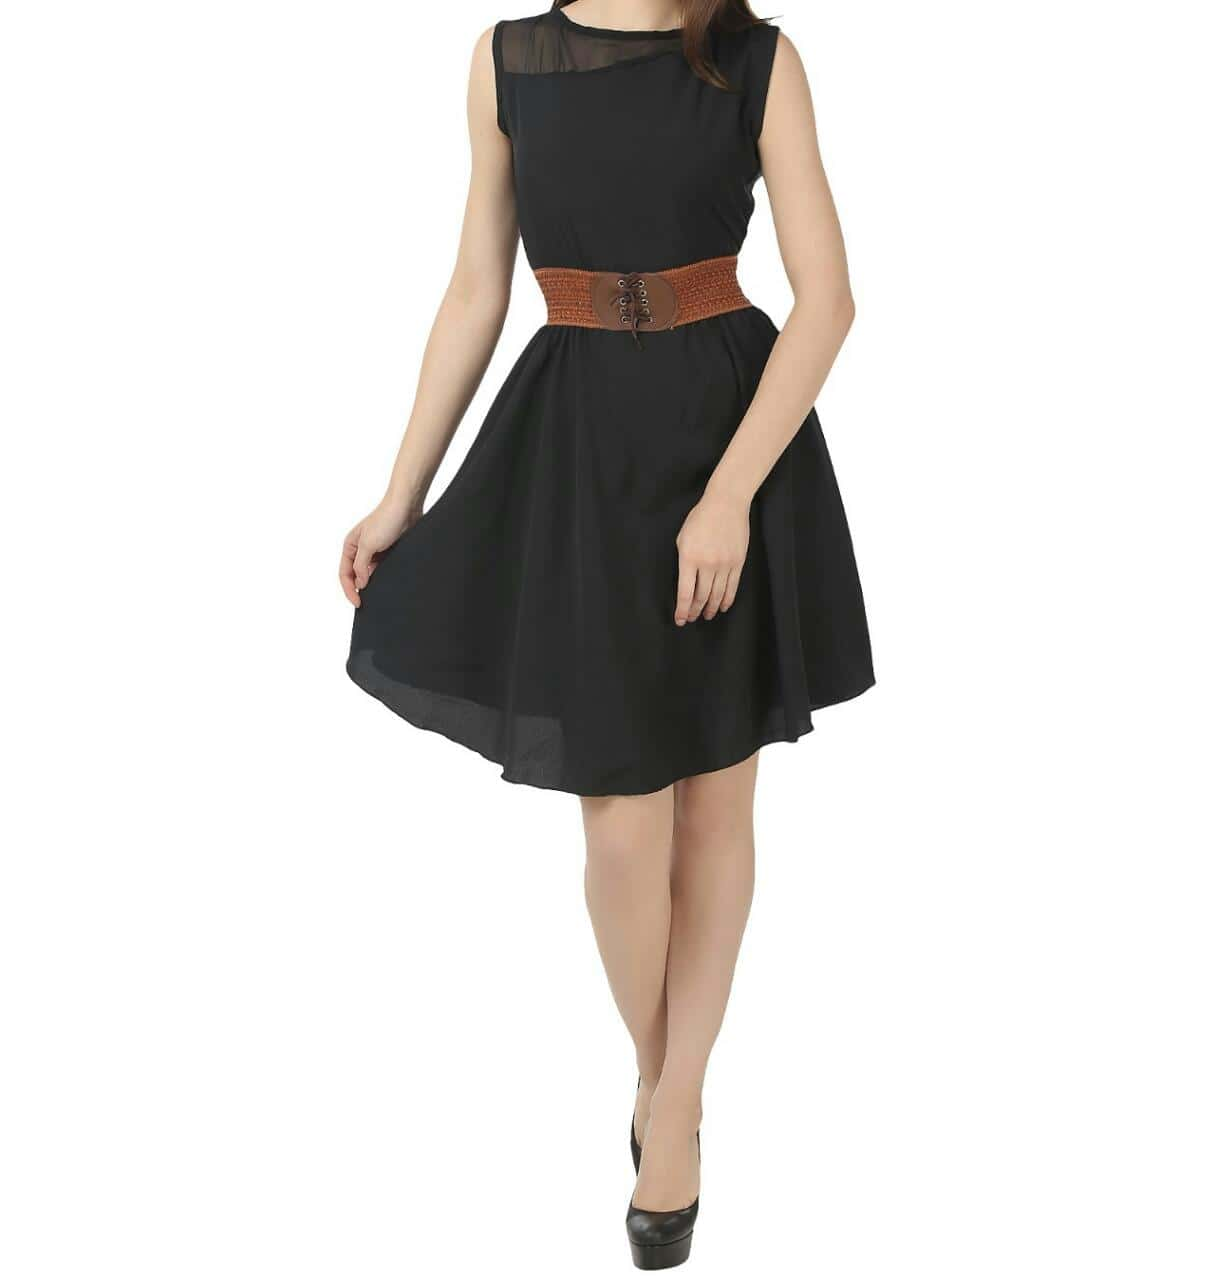 *WOMEN STYLISH BELT DRESS* 👗   fabric Creap With Gorjet  Back zep  Waist Stylish belt   Size : M : L  Bust : 32 up to 36  Lanth : 39  Price : 480/💰   Siping Extra..   Unlimited stock bulk oder Now